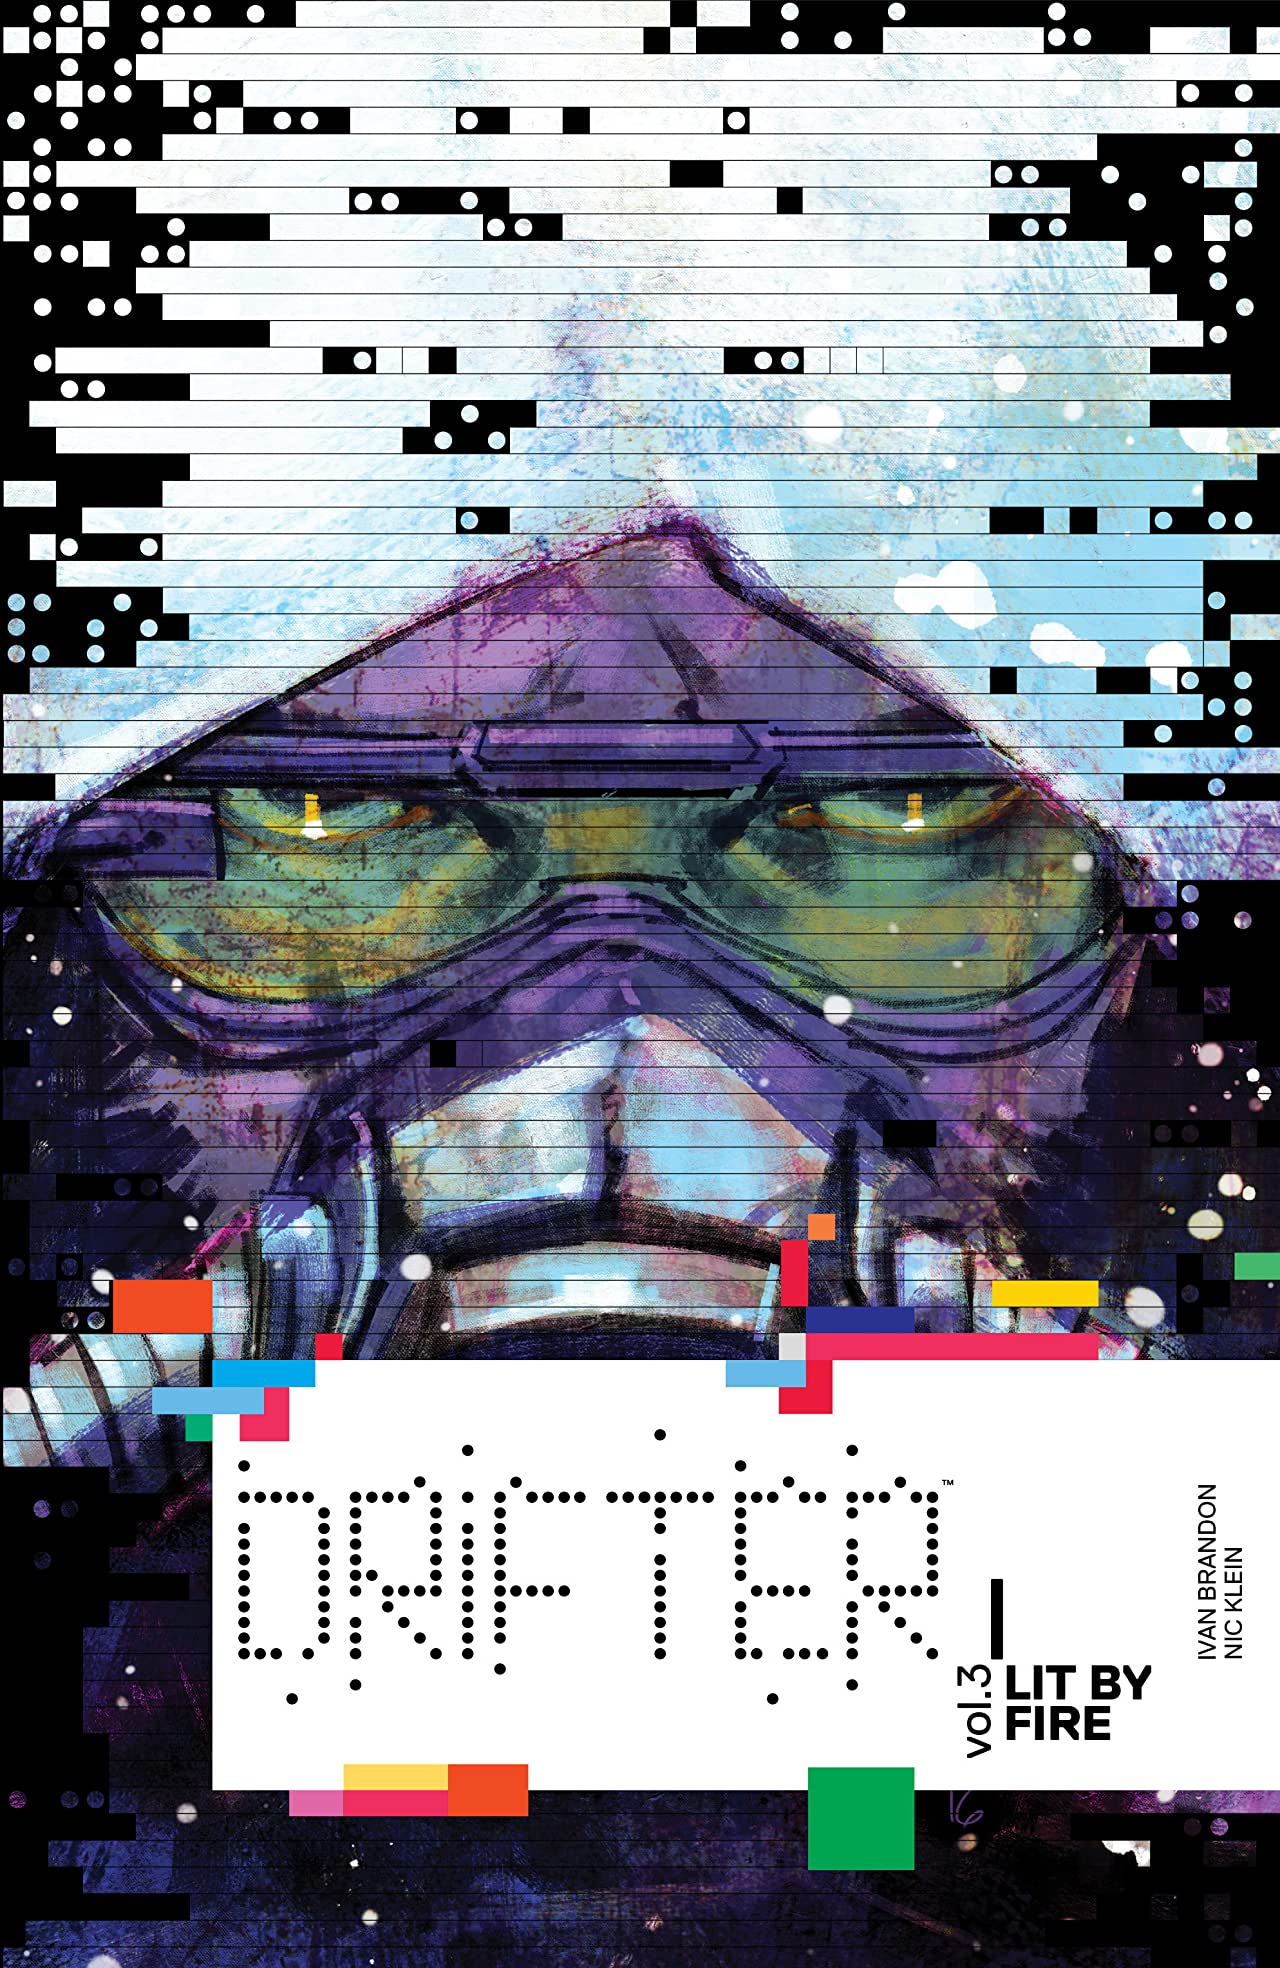 Drifter Vol. 3: Lit by Fire